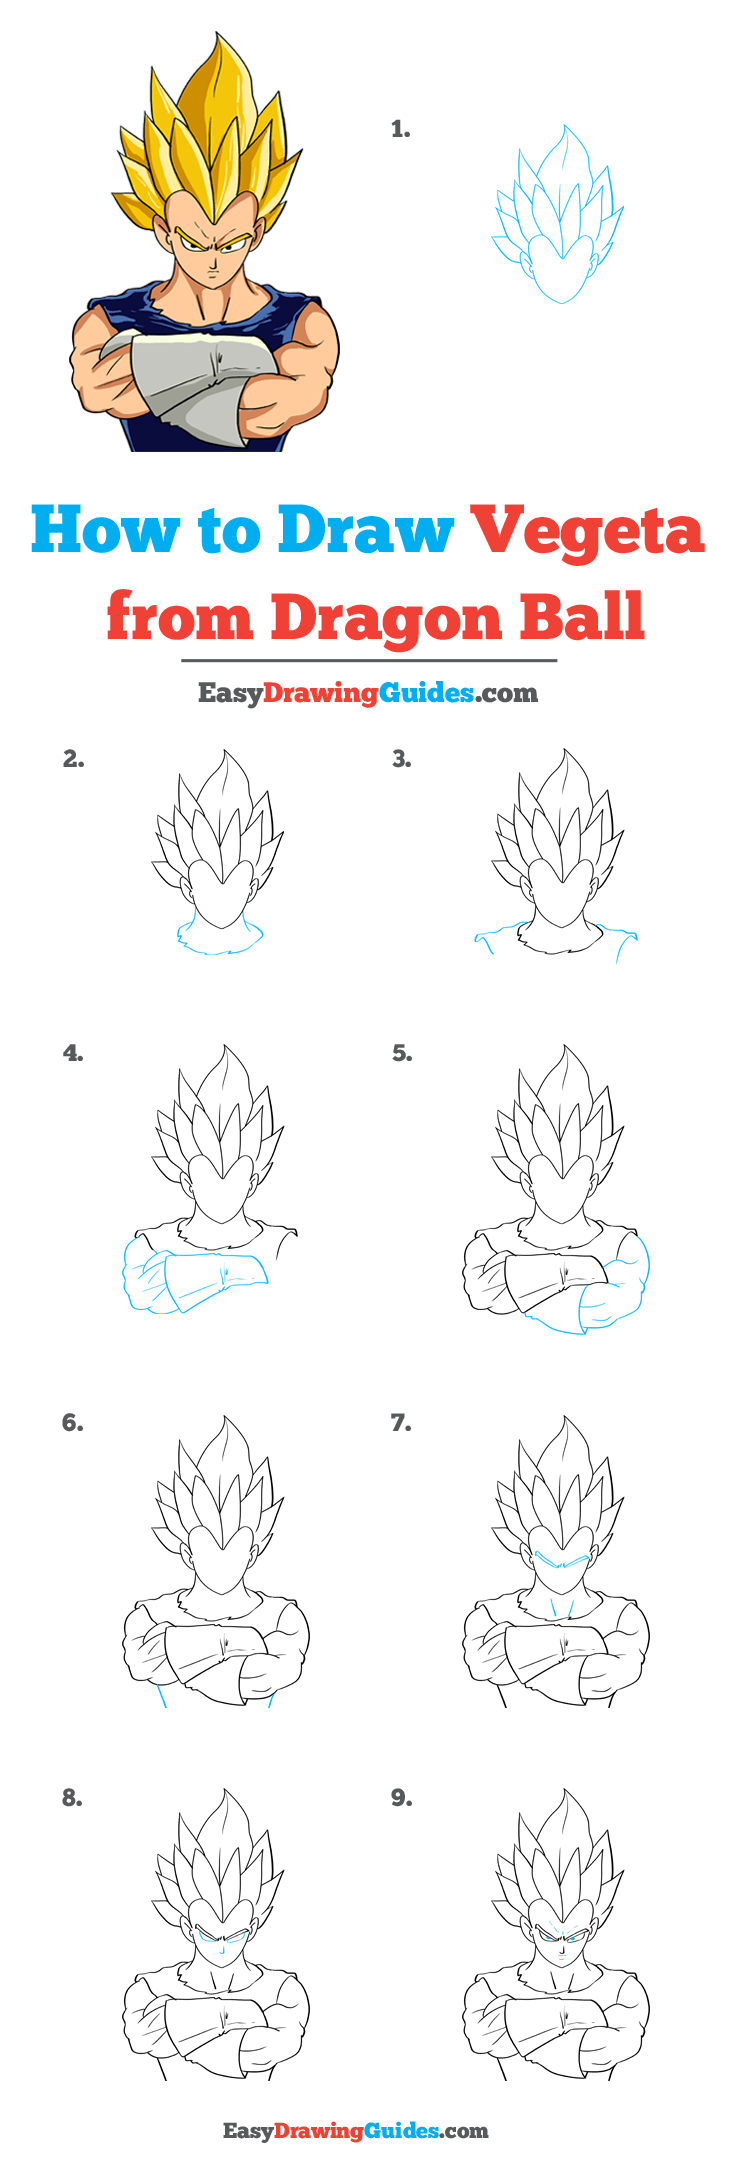 How to Draw Vegeta from Dragon Ball